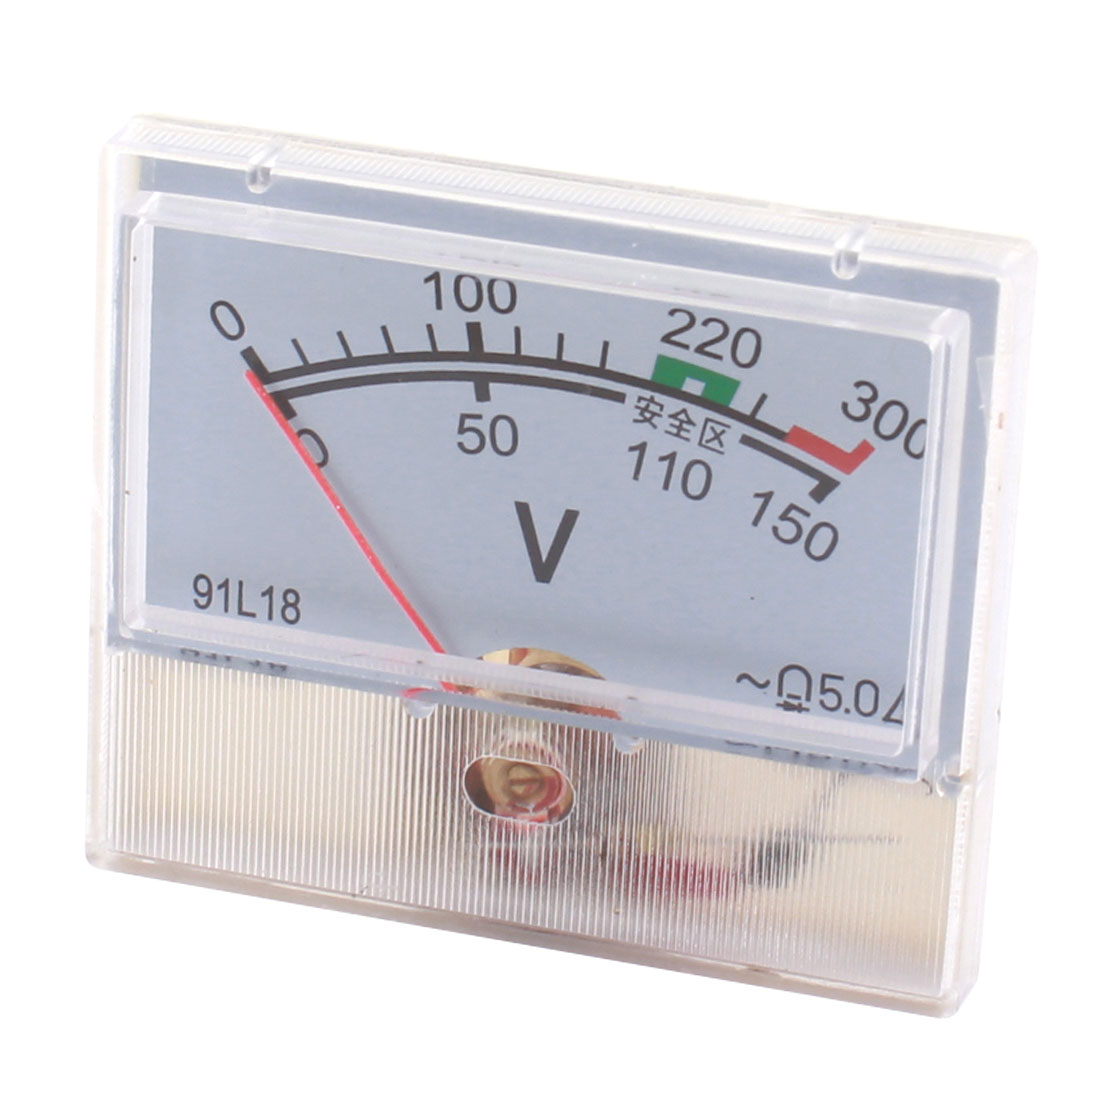 AC 0-300V Class 5.0 Accuracy Rectangle Plastic Fine Tuning Dial Voltage Panel Meter Analog Voltmeter for Testing Work